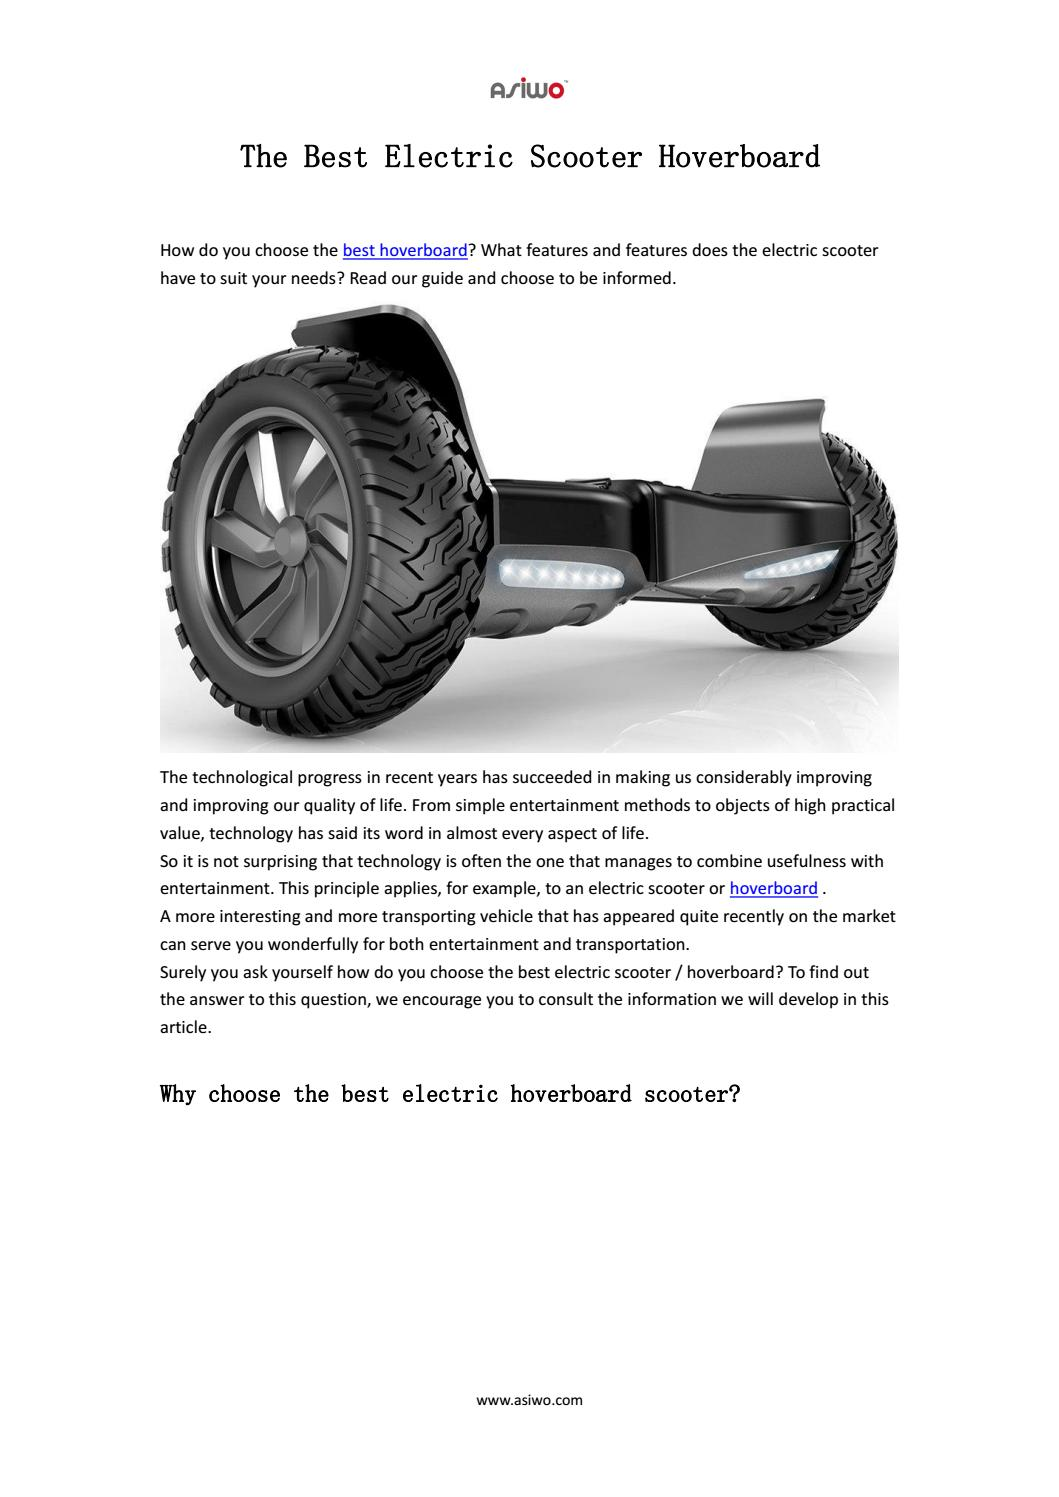 The Best Electric Scooter Hoverboard By Luna Leng Issuu